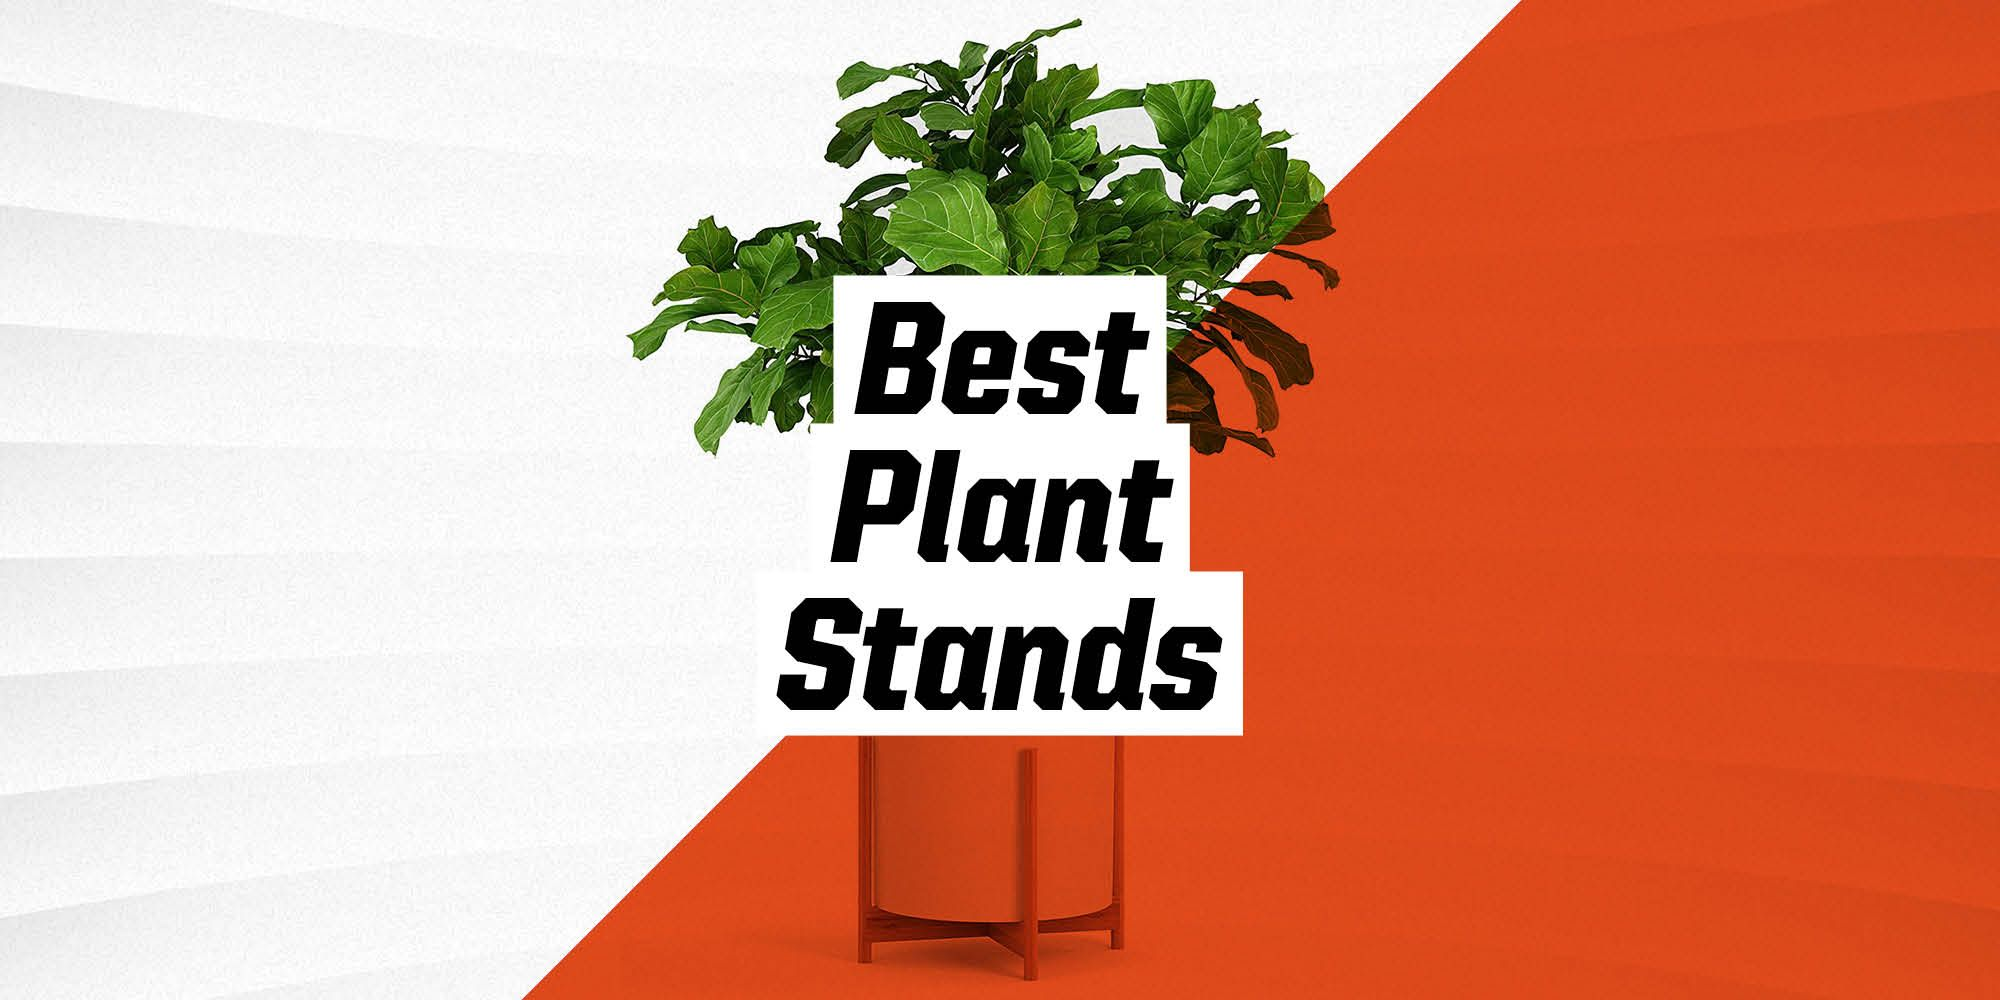 The 10 Best Plant Stands for Your Home